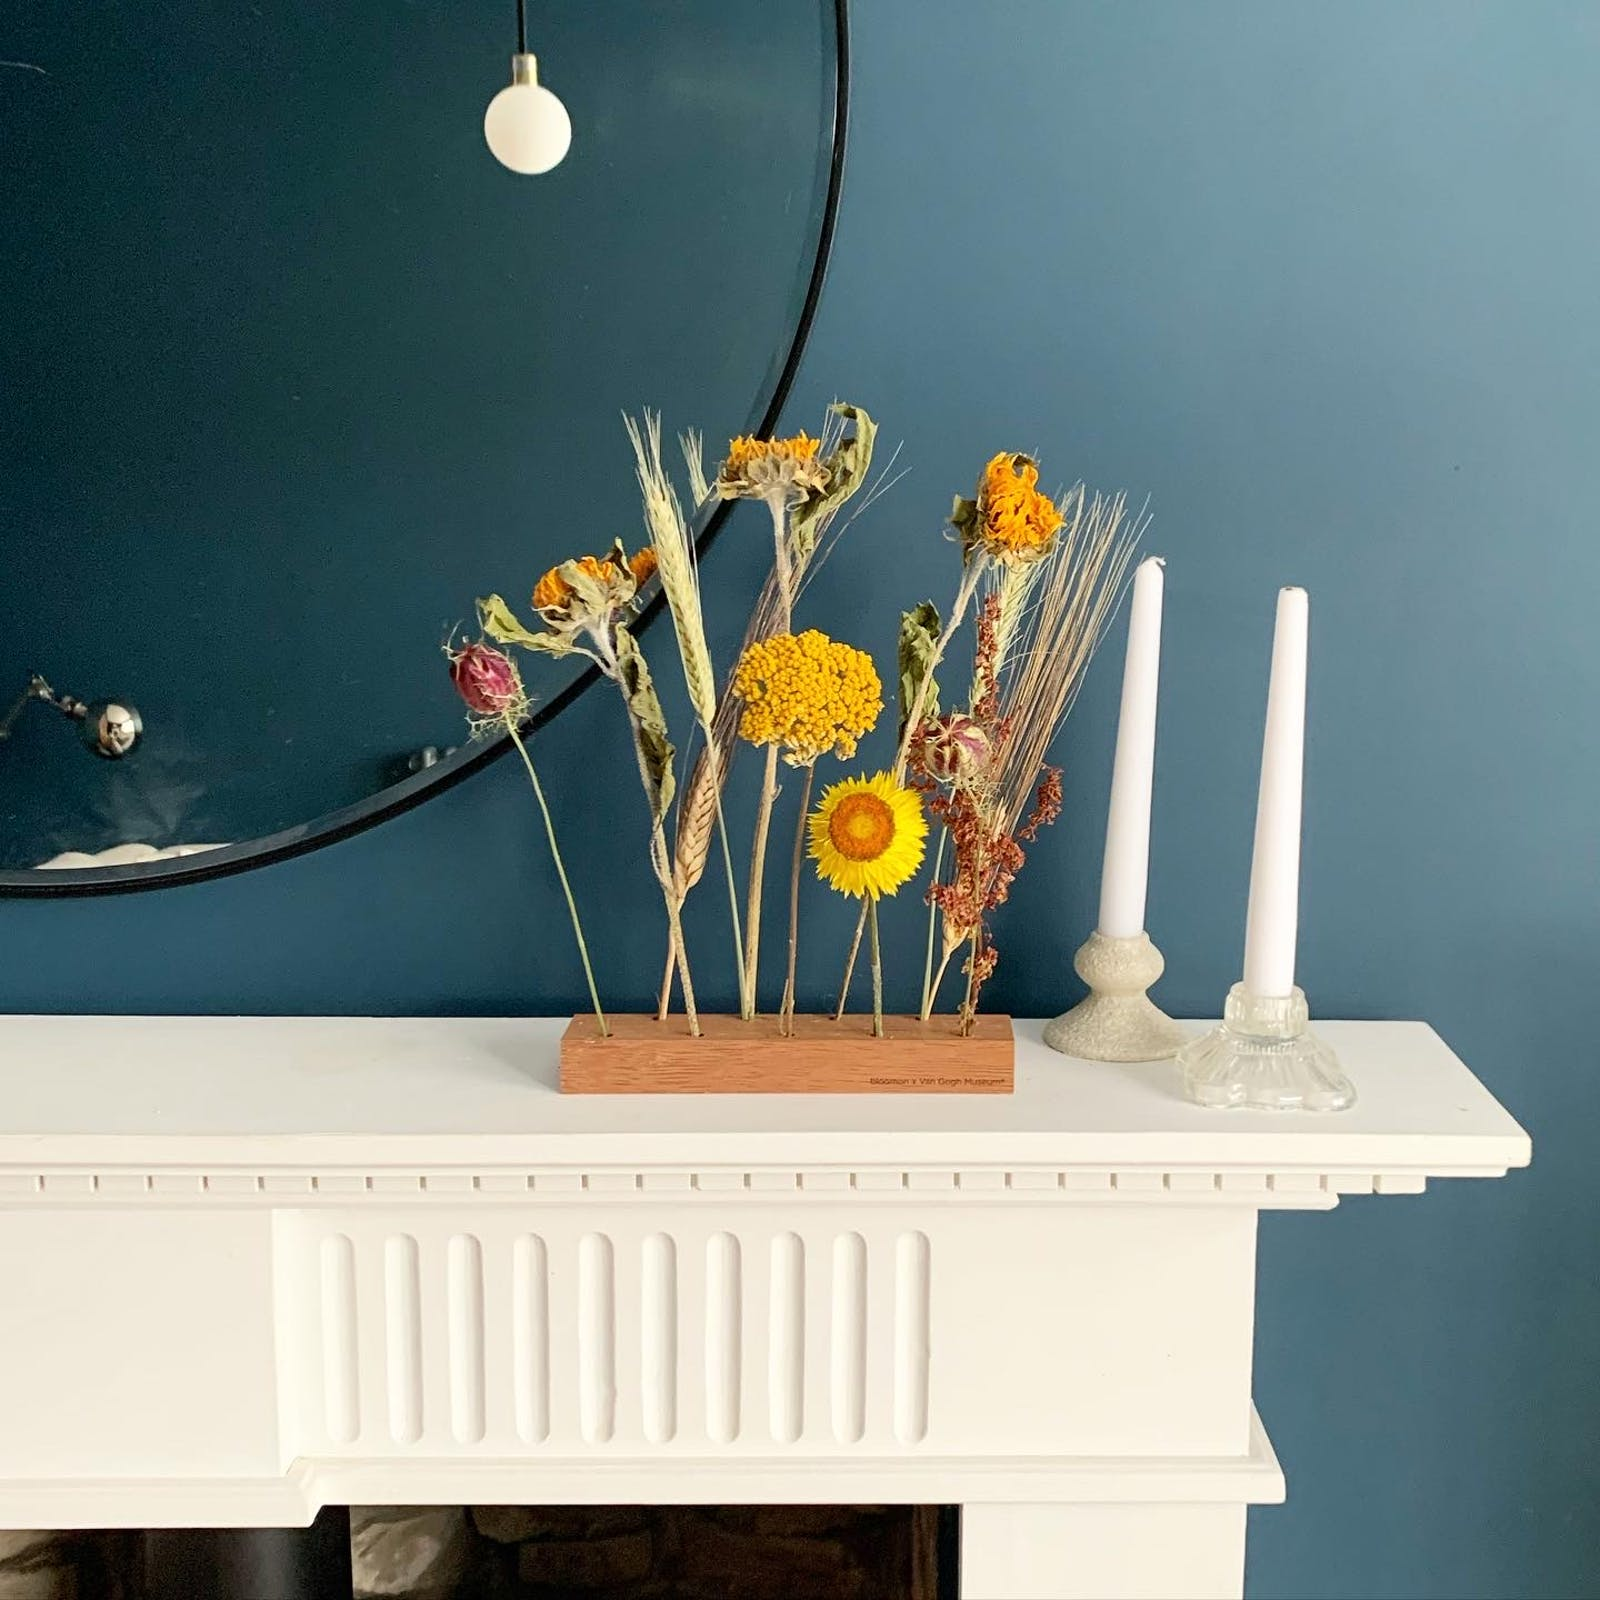 Living room with white fireplace, Lick Blue 07 walls, yellow flowers and candles